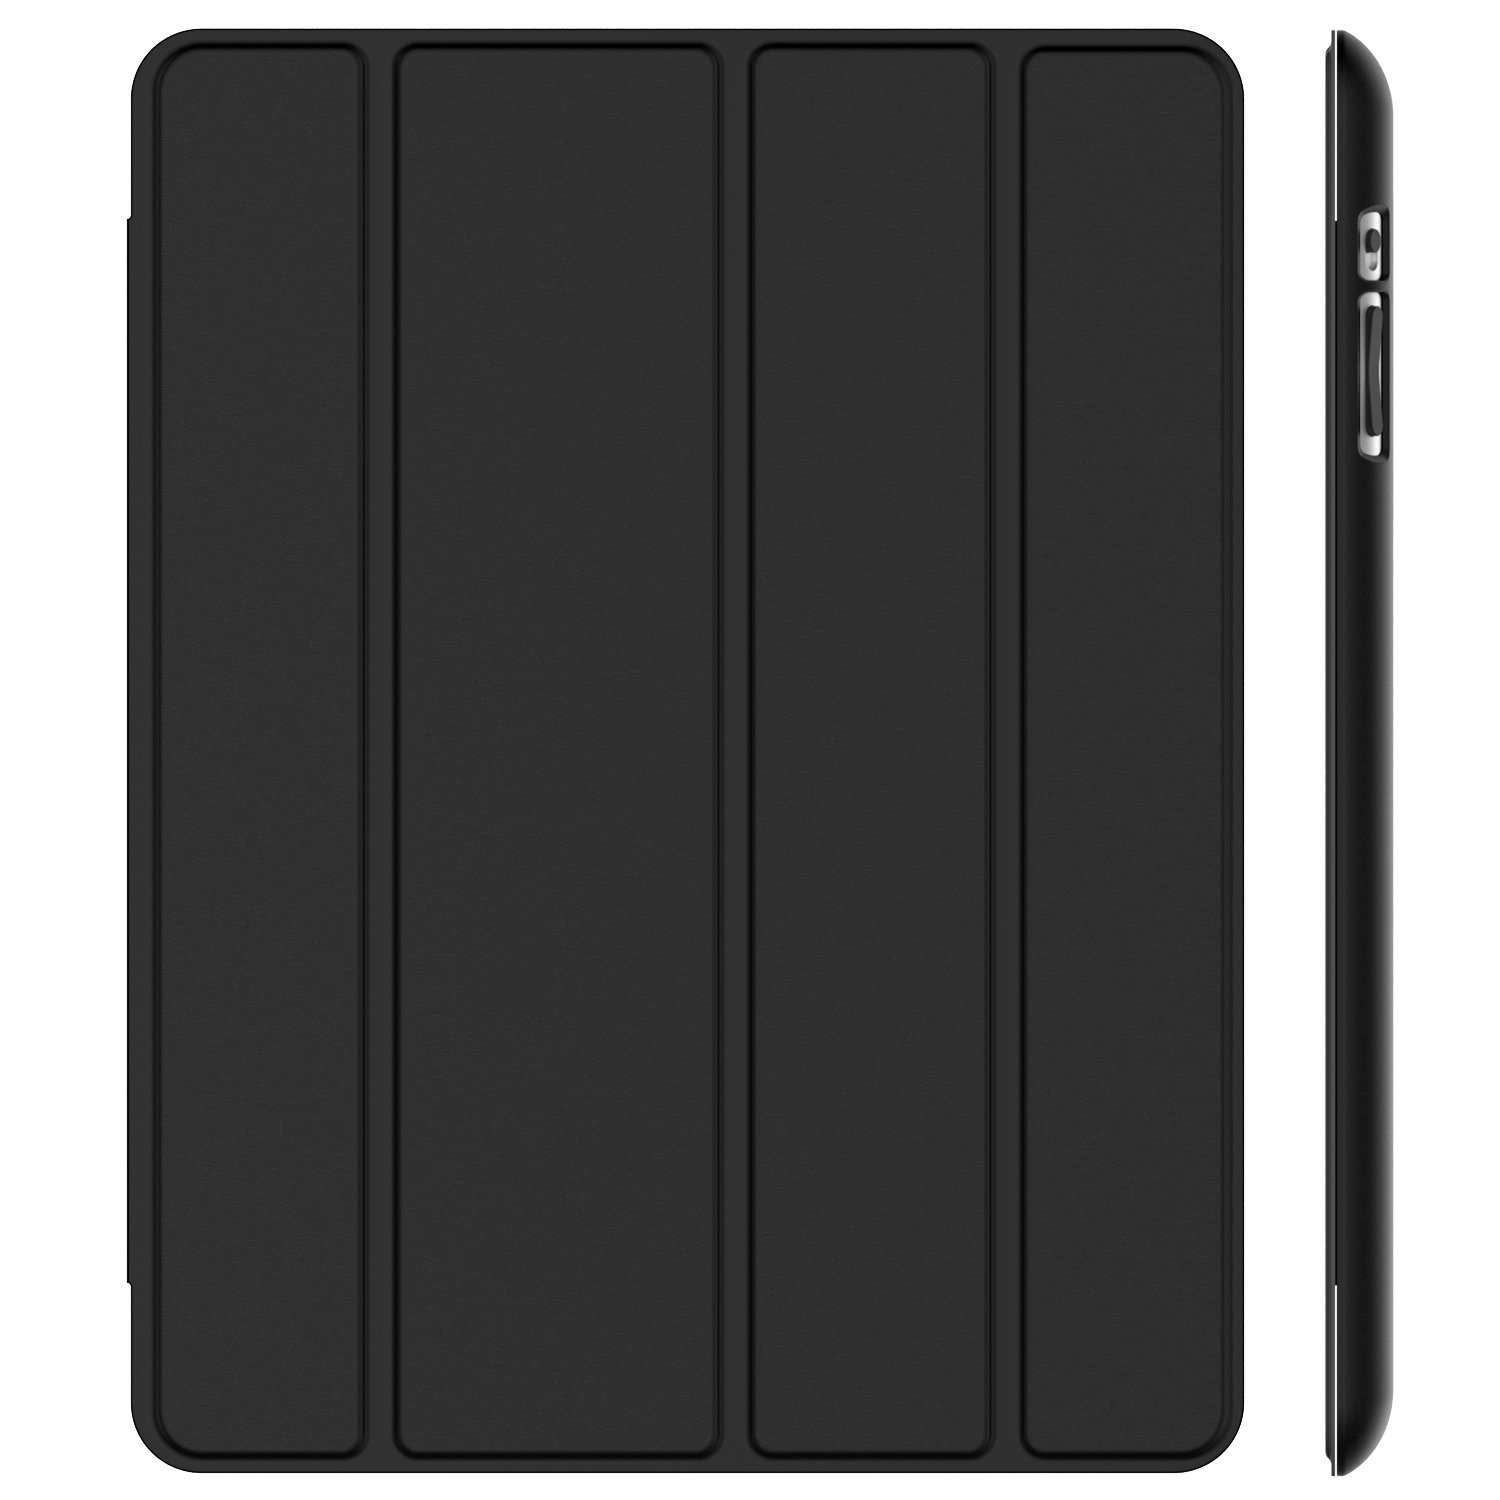 JETech Case for Apple iPad 2 3 4 (Old Model) Smart Cover with Auto Sleep/Wake (Black) by JETech